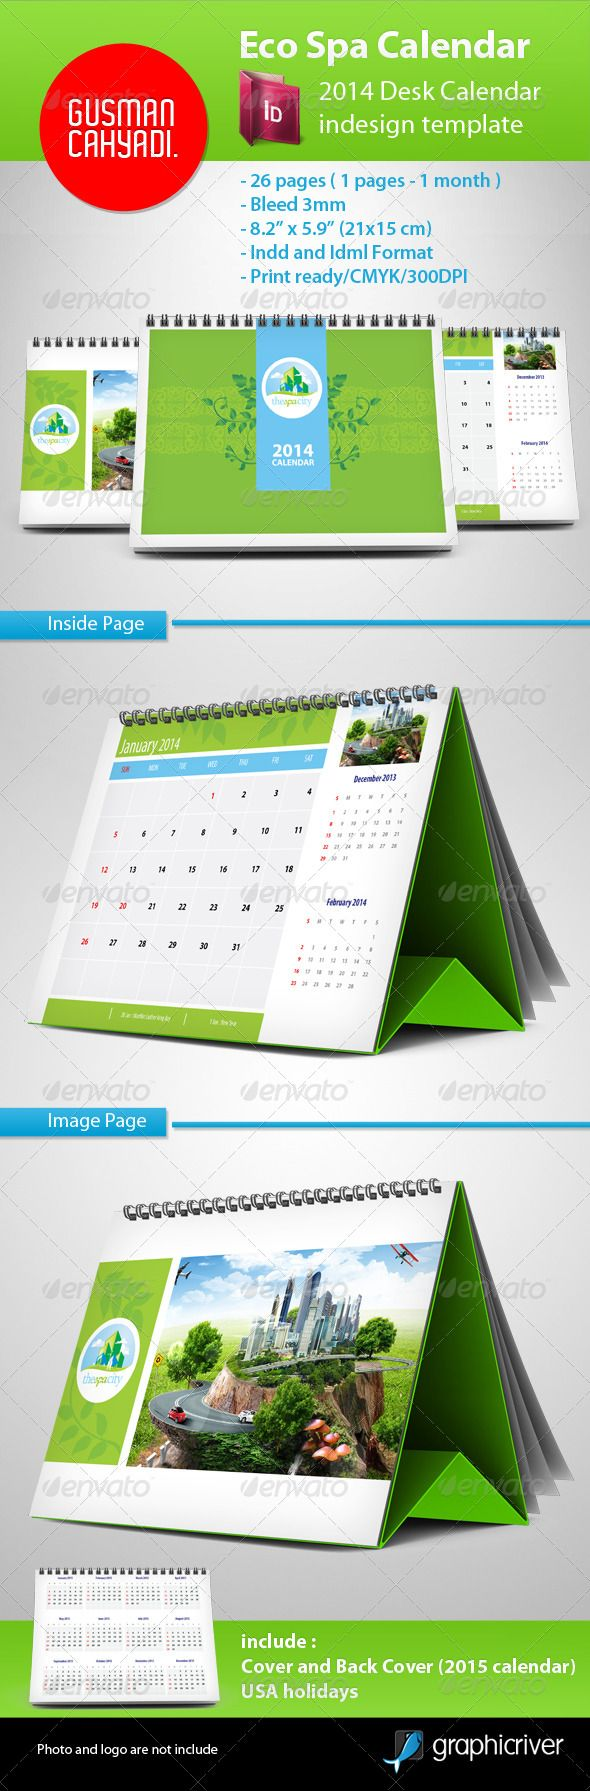 Best Calendar Design : Best images about corporate calendar design on pinterest